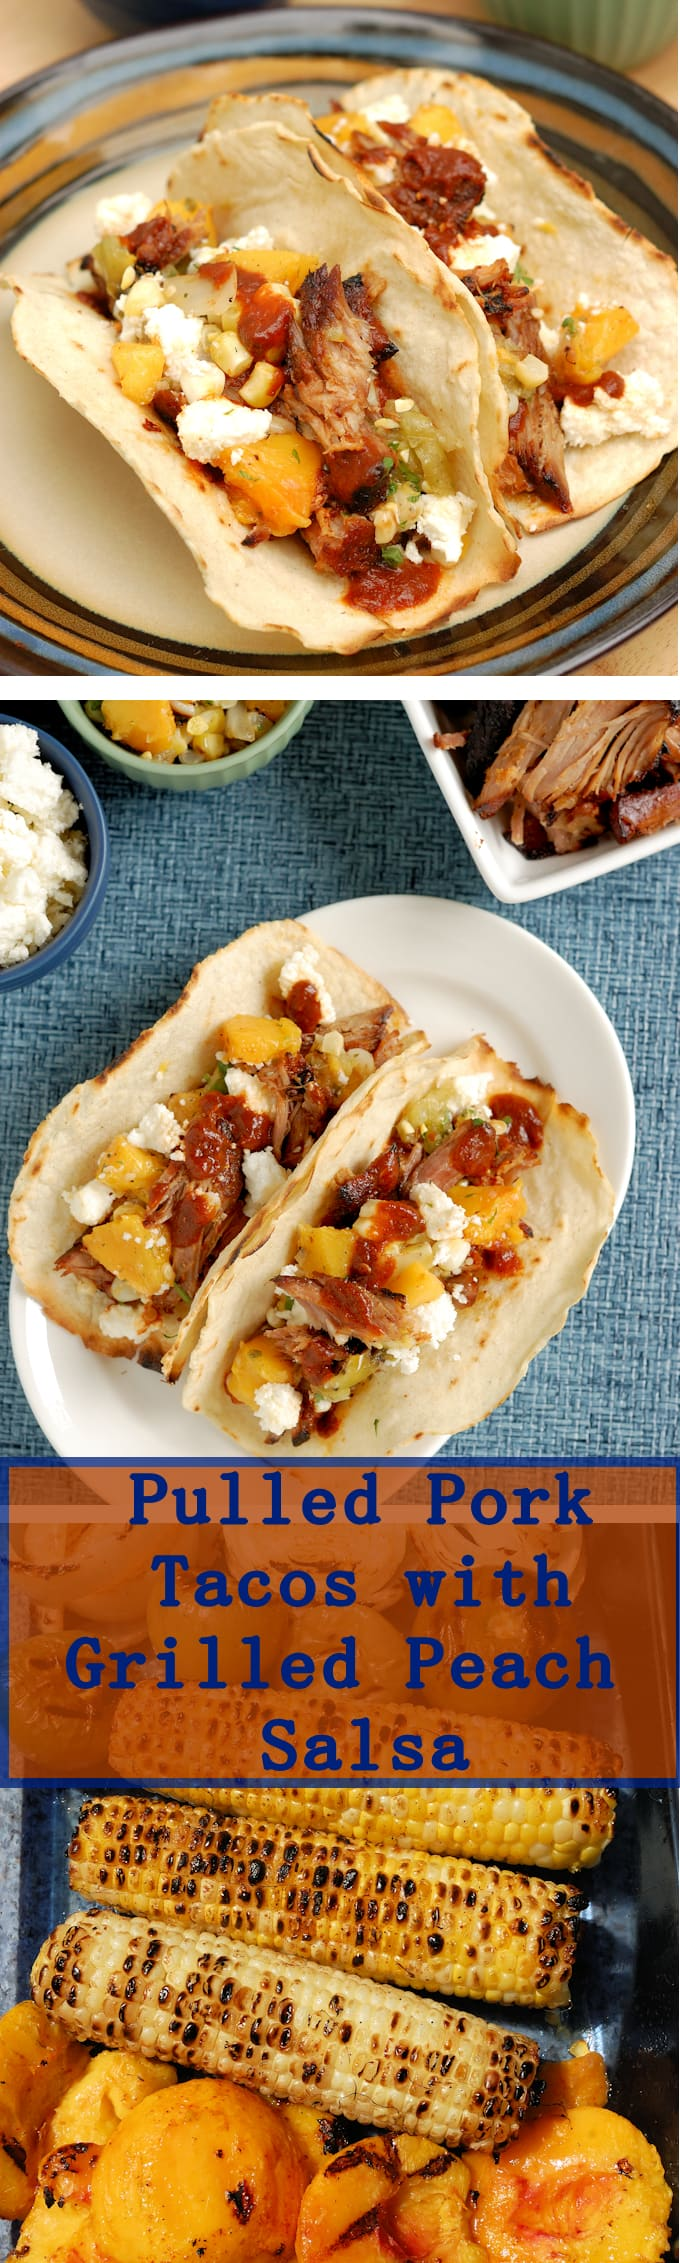 Pulled Pork Tacos with Grilled Peach Salsa is a perfect summer #SundaySupper. Easy to make and so delicious.